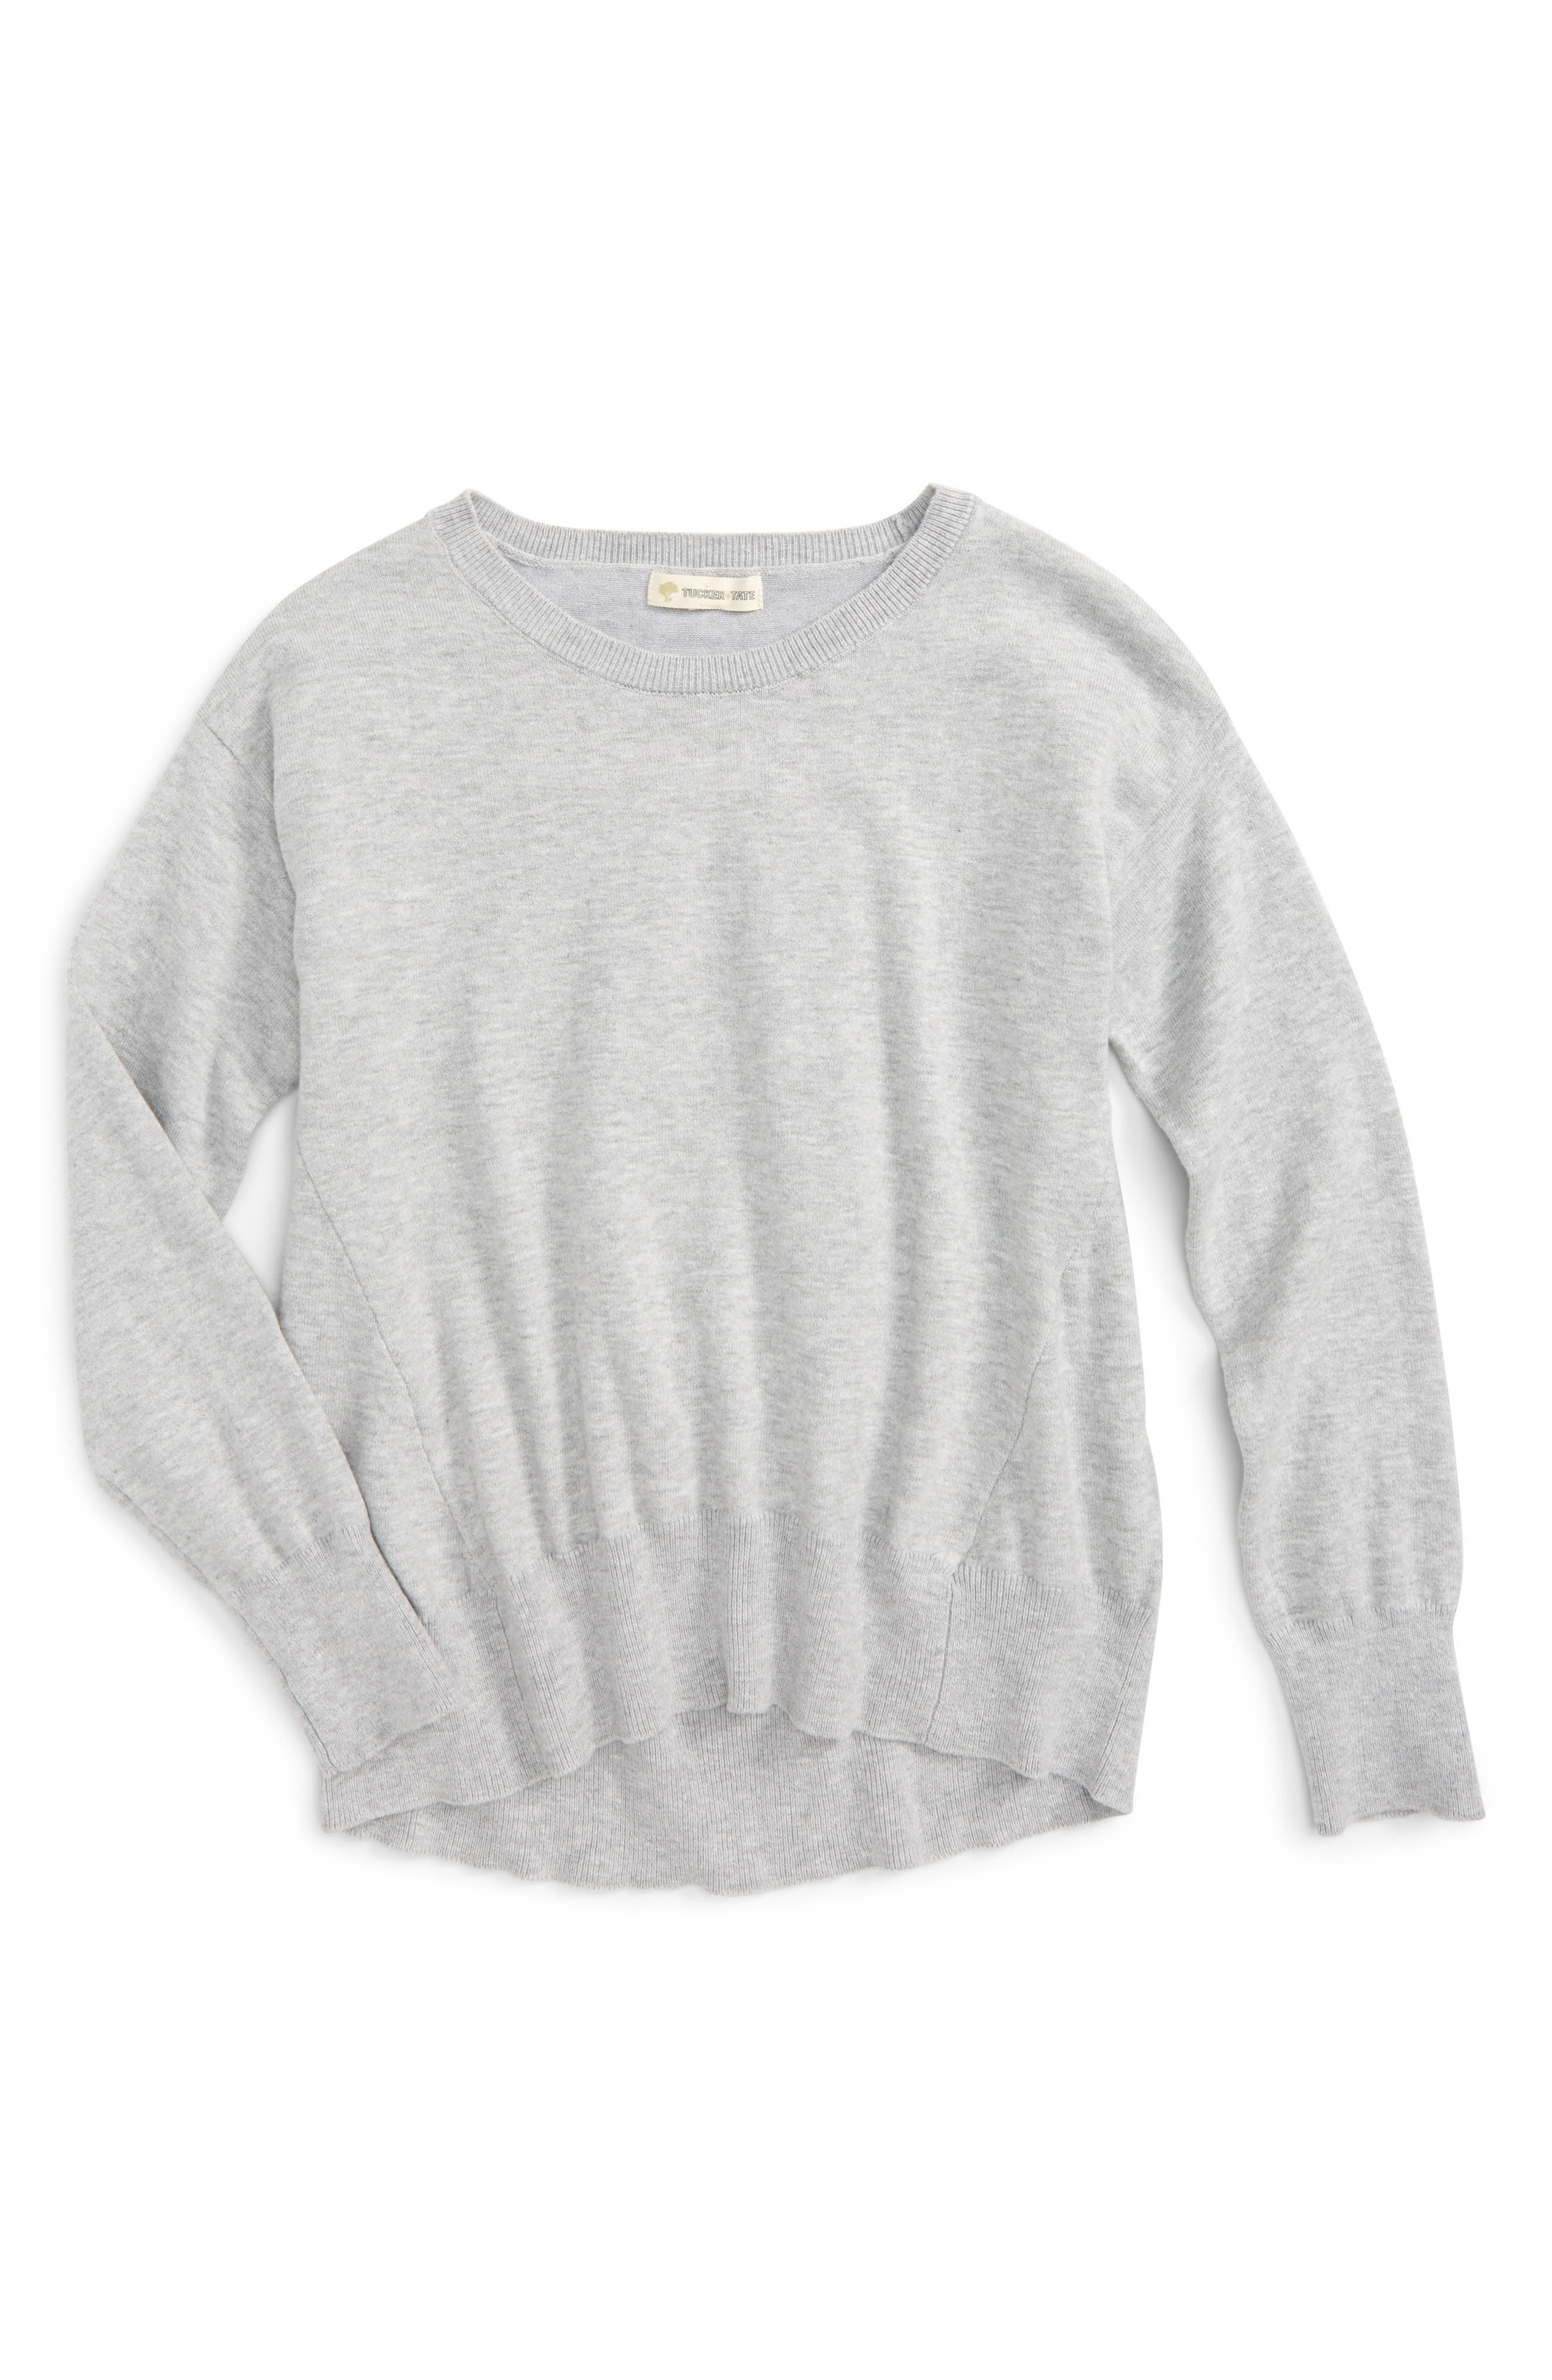 Easy Seam Knit Sweater,                             Main thumbnail 1, color,                             050